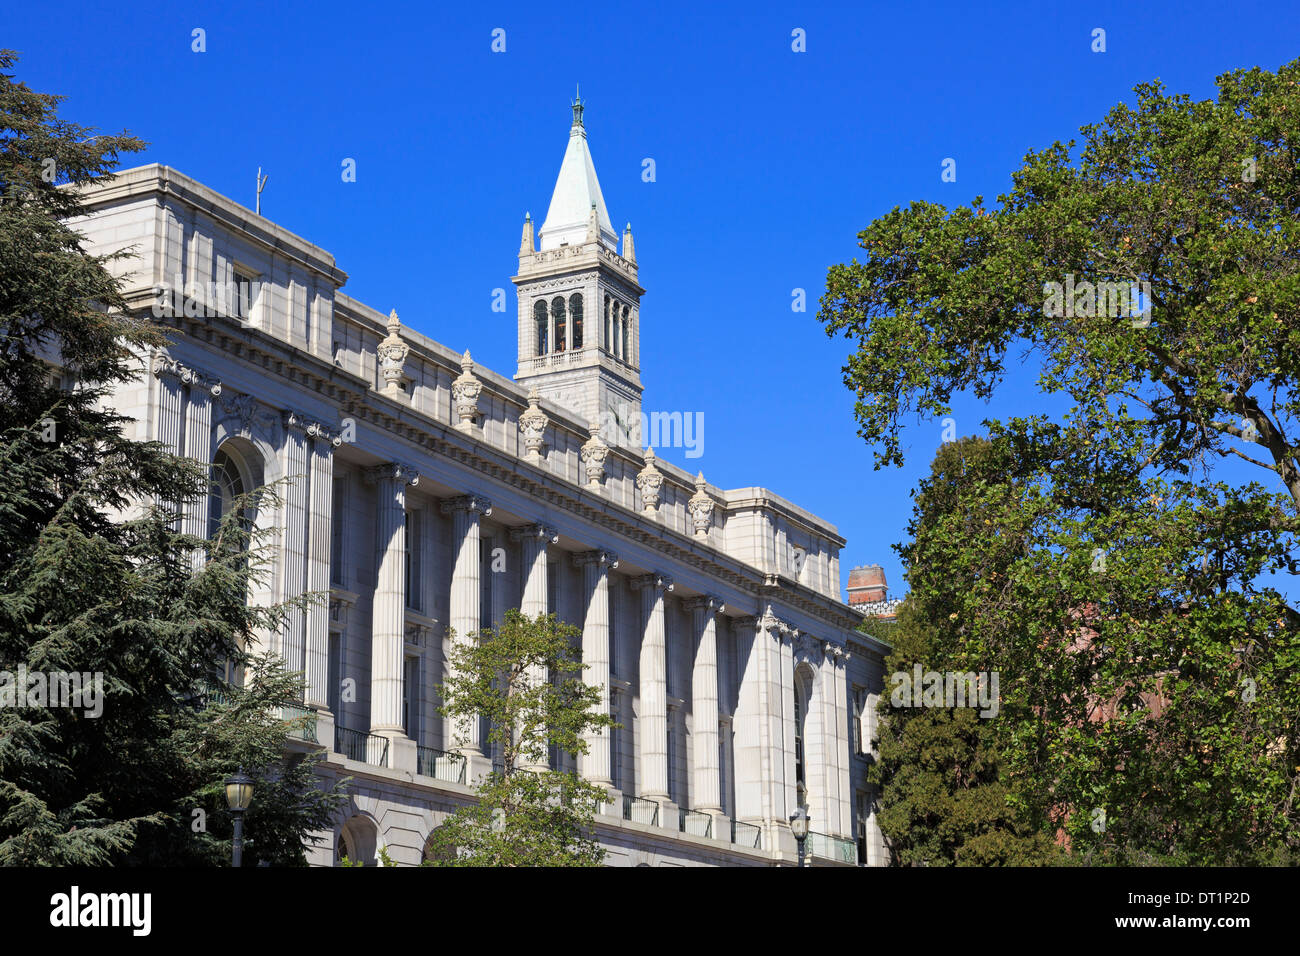 University of California, Berkeley, California, United States of America, North America - Stock Image